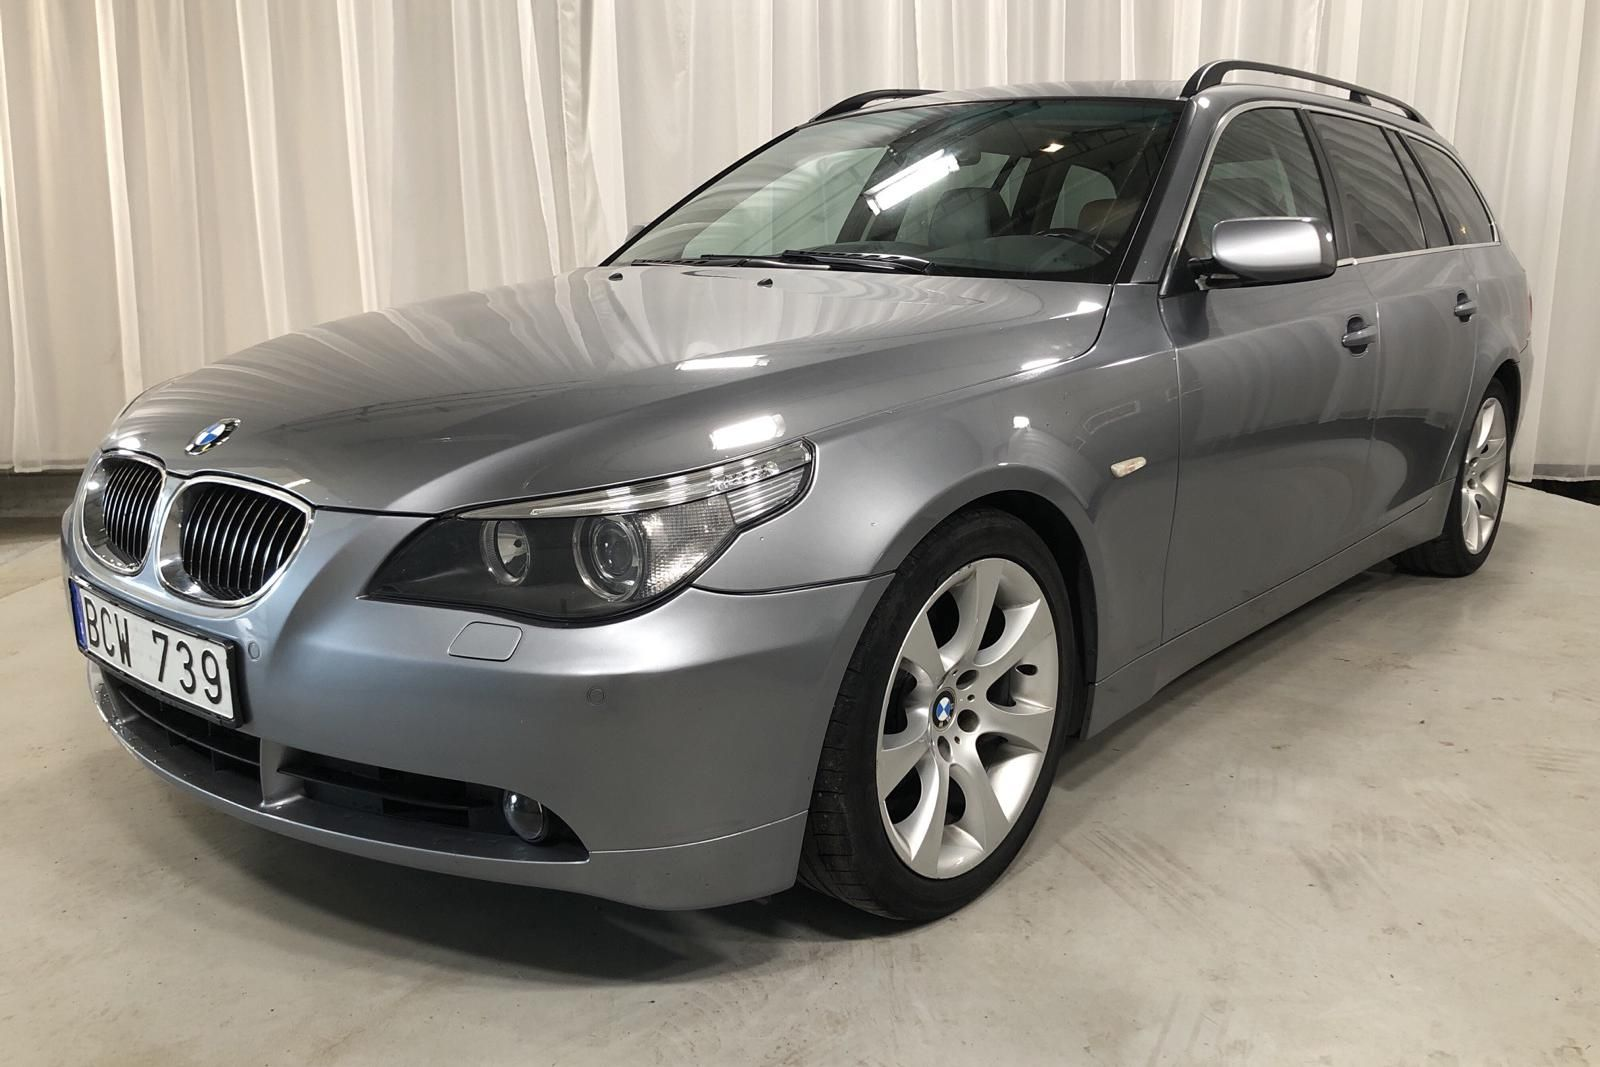 BMW 525d Touring, E61 (177 PS)